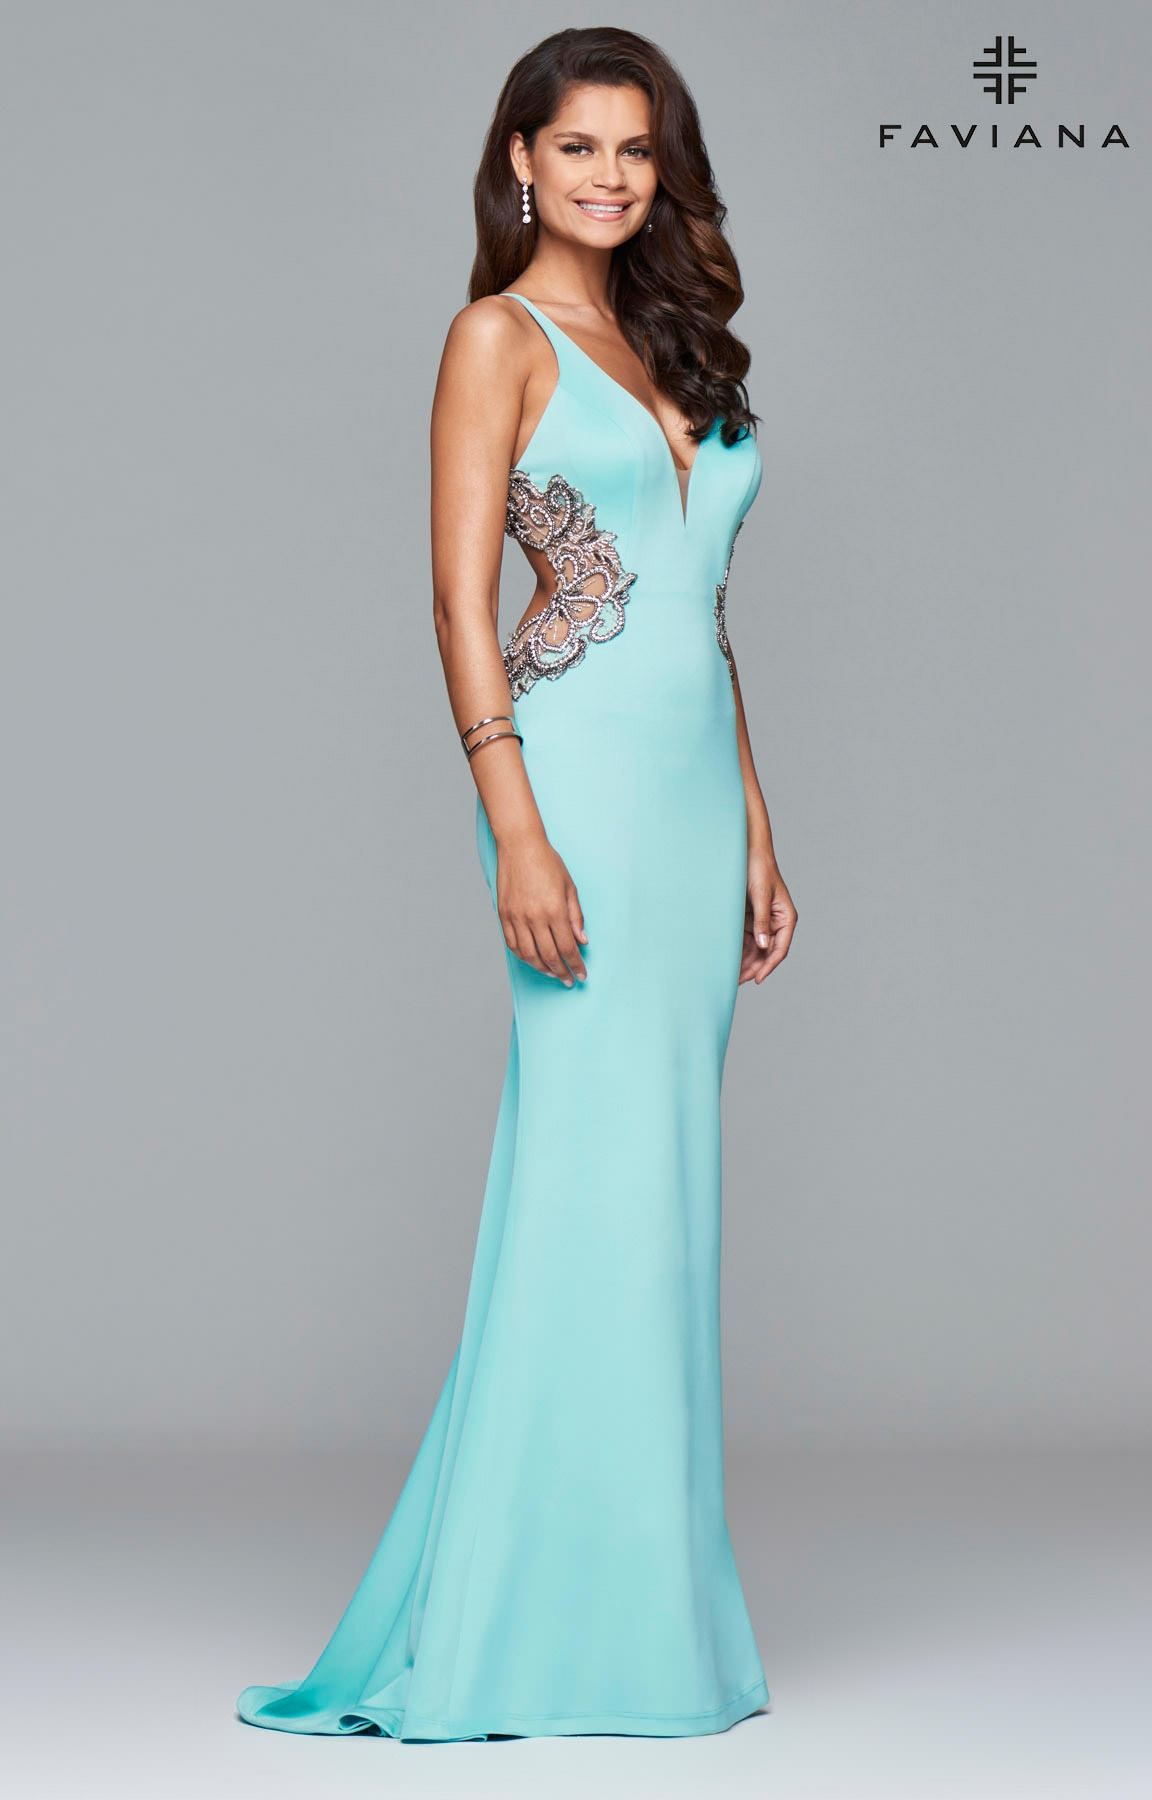 Faviana S7916 - Open Back Detailed Gown Prom Dress